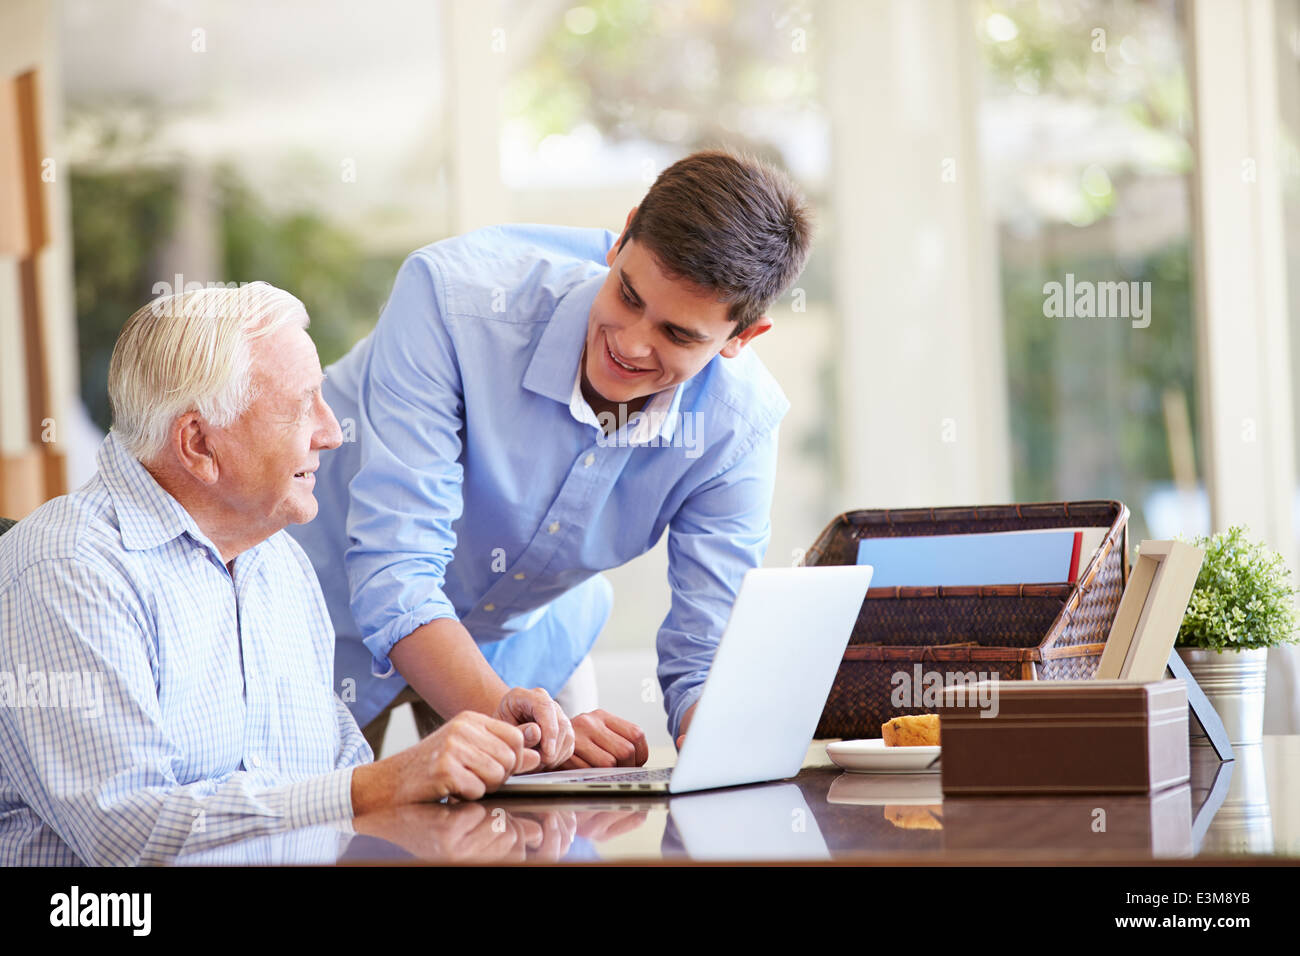 Teenage Grandson Helping Grandfather With Laptop - Stock Image